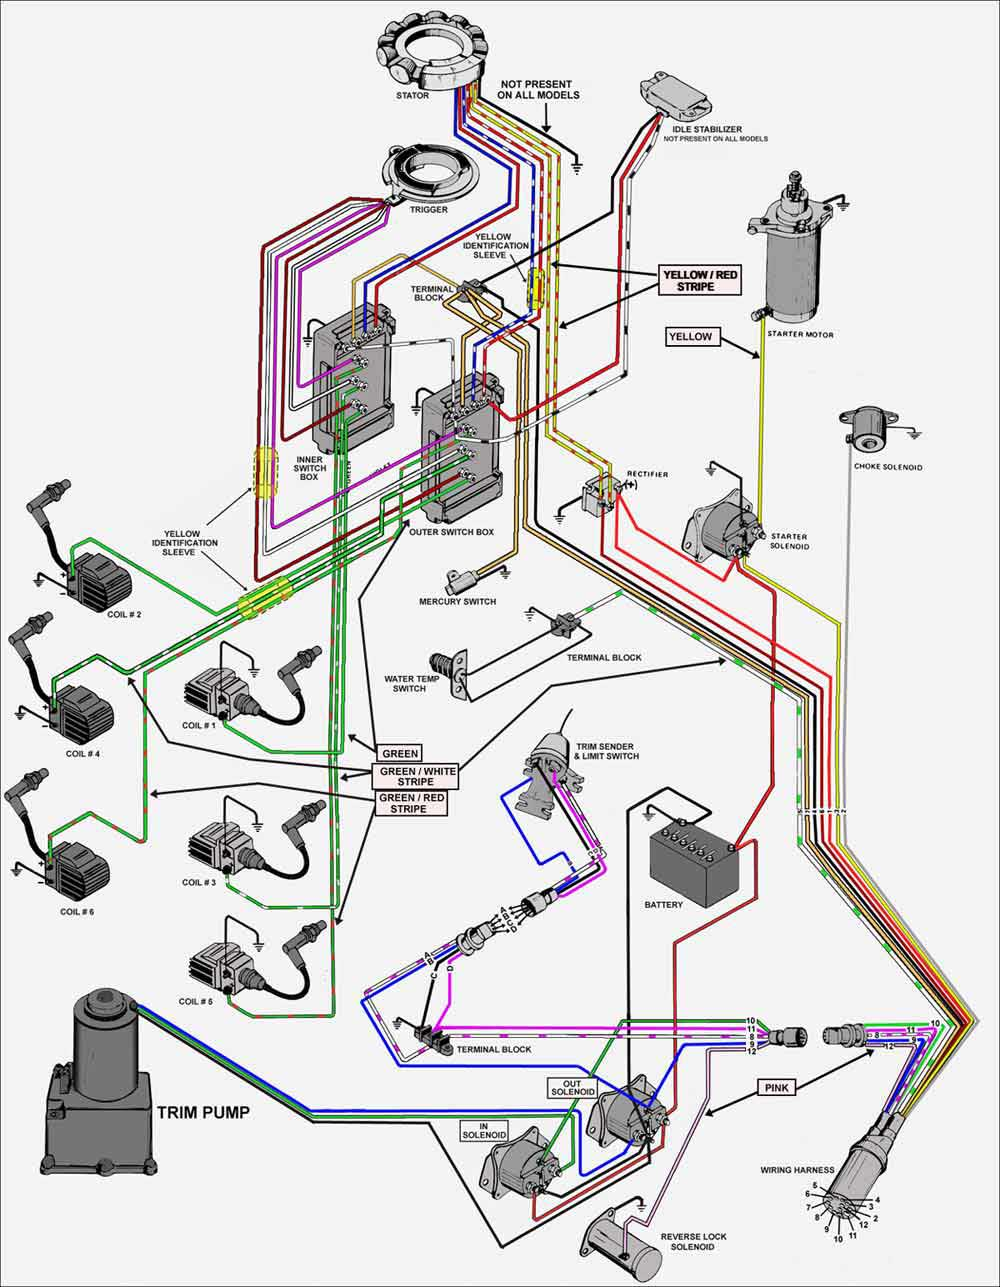 mercury 175 wiring diagram wiring diagram databasemercury outboard wiring diagrams mastertech marin mercury 175 efi wiring diagram mercury 175 wiring diagram